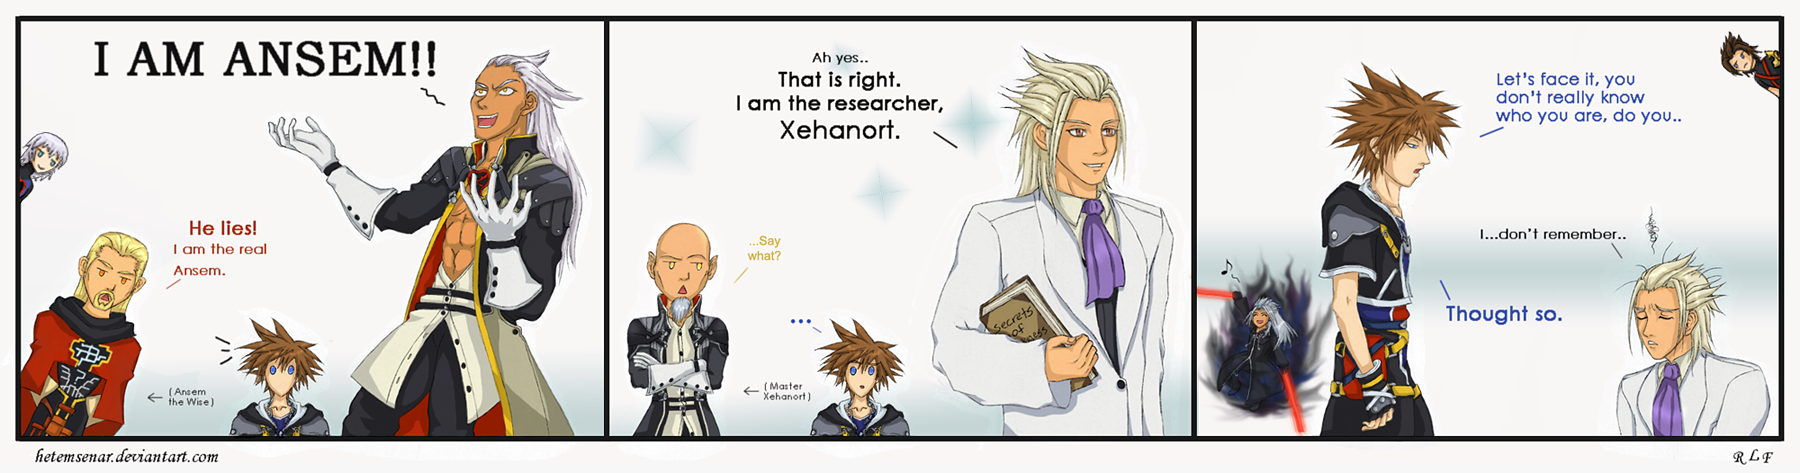 KH- Identity Issues